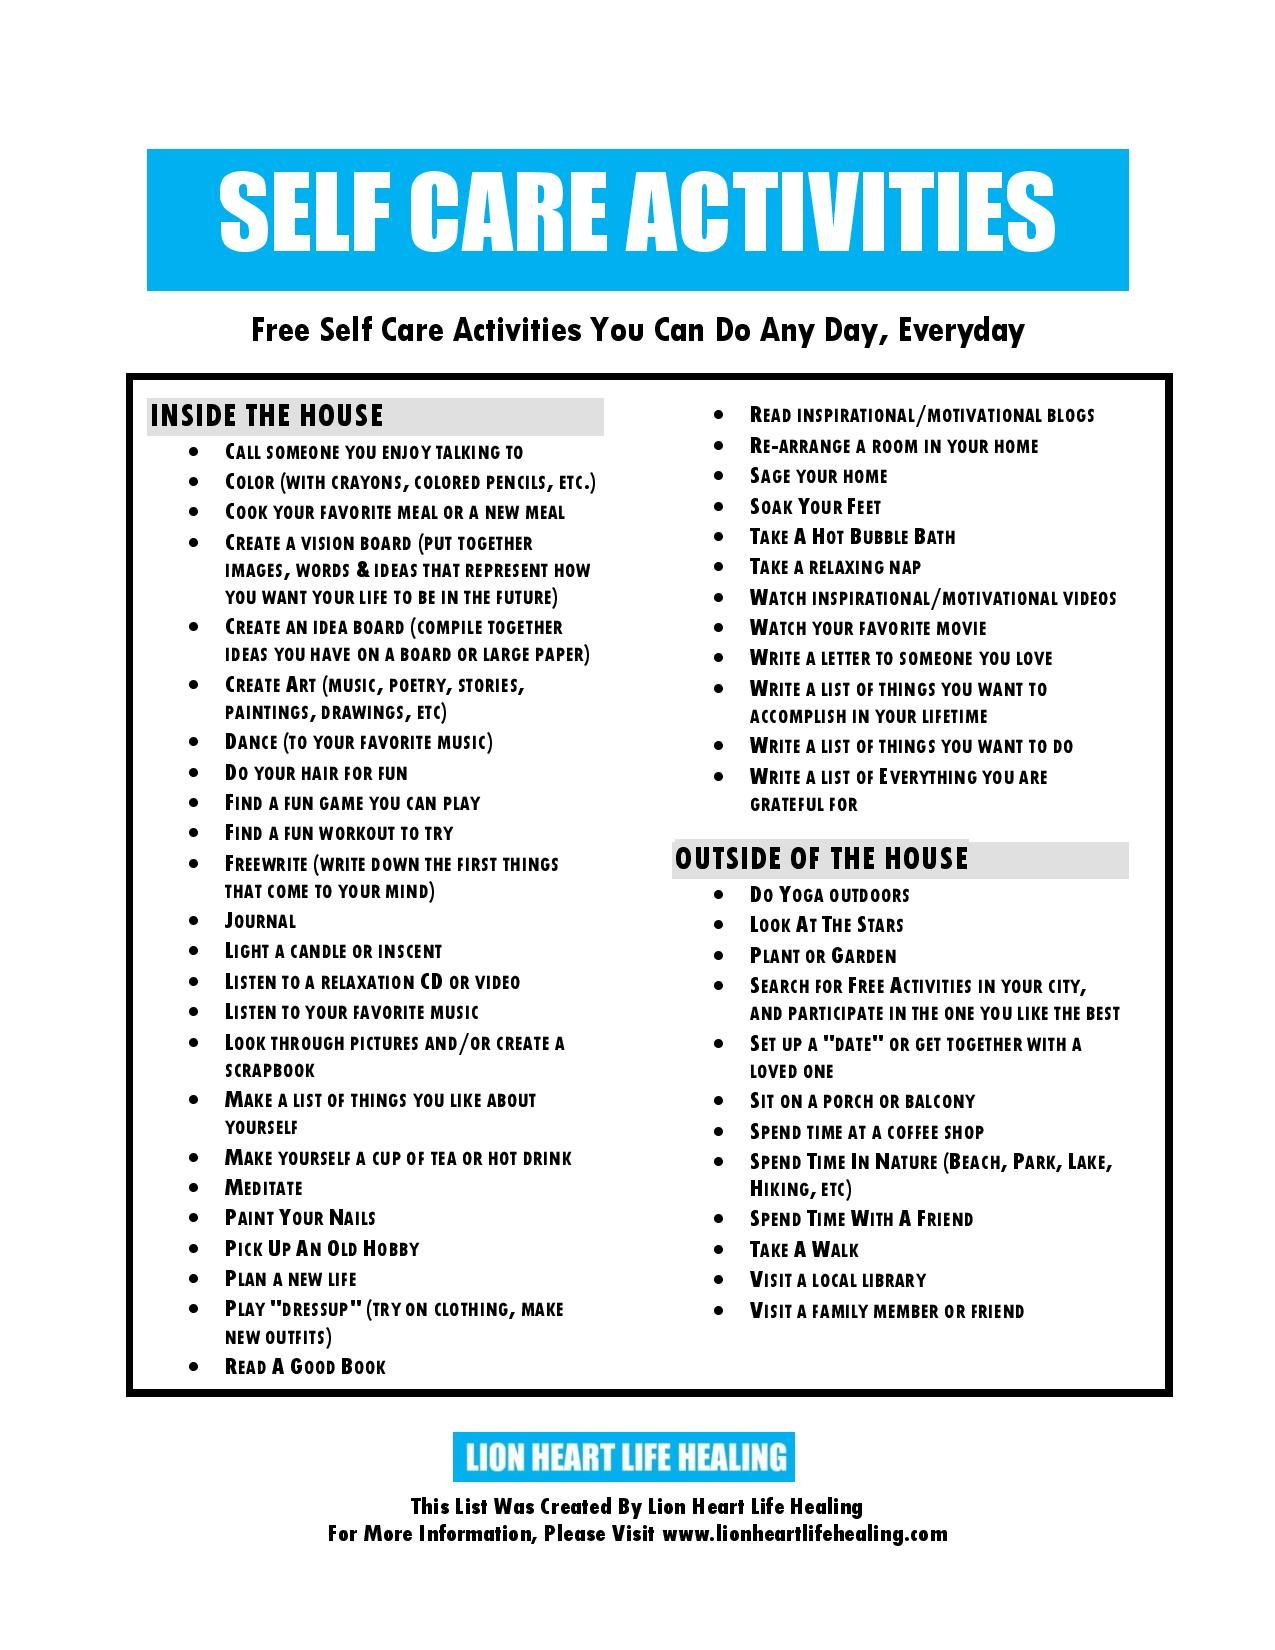 worksheet Self Care Plan Worksheet self care plan printable worksheet worksheets for school signaturebymm